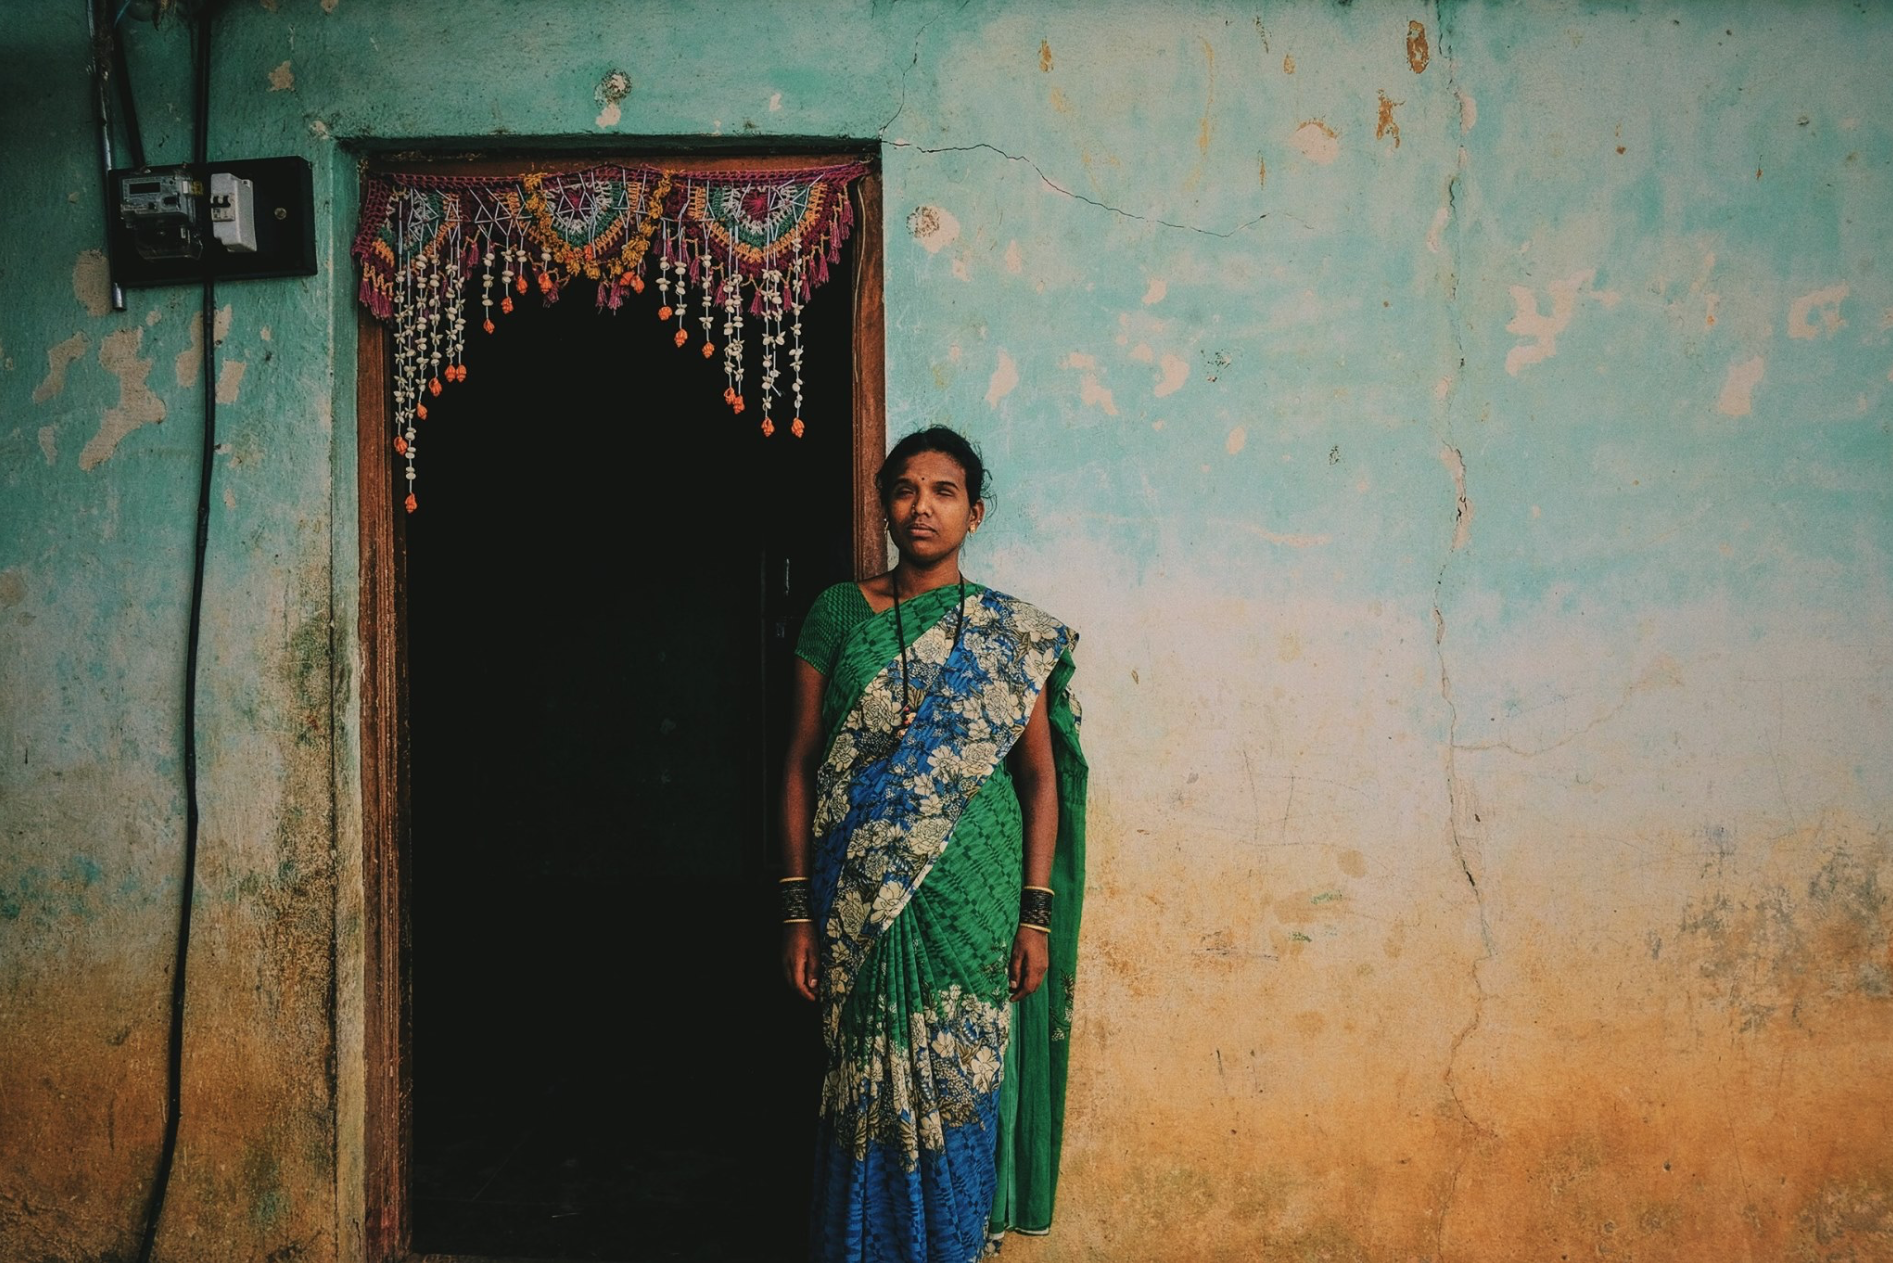 It is estimated that one third of men in the larger Devanahalli area are addicted to alcohol. Alcohol is accessible and used from an early age. Moreover adulterated drinks brings in additional health challenges to the men here who consume it. This is a portrait of Varalakshmi, the visually impaired wife of Venkatesh. They have one child together. Venkatesh who works as as a manual labourer was an alcoholic for 15+ years but has been clean now through the deaddcition camps and counselling done by  #BangaloreBaptistHospital  in partnership with AA. Varalakshmi told us that she being 50% blind is much manageable today because her husband is sober.